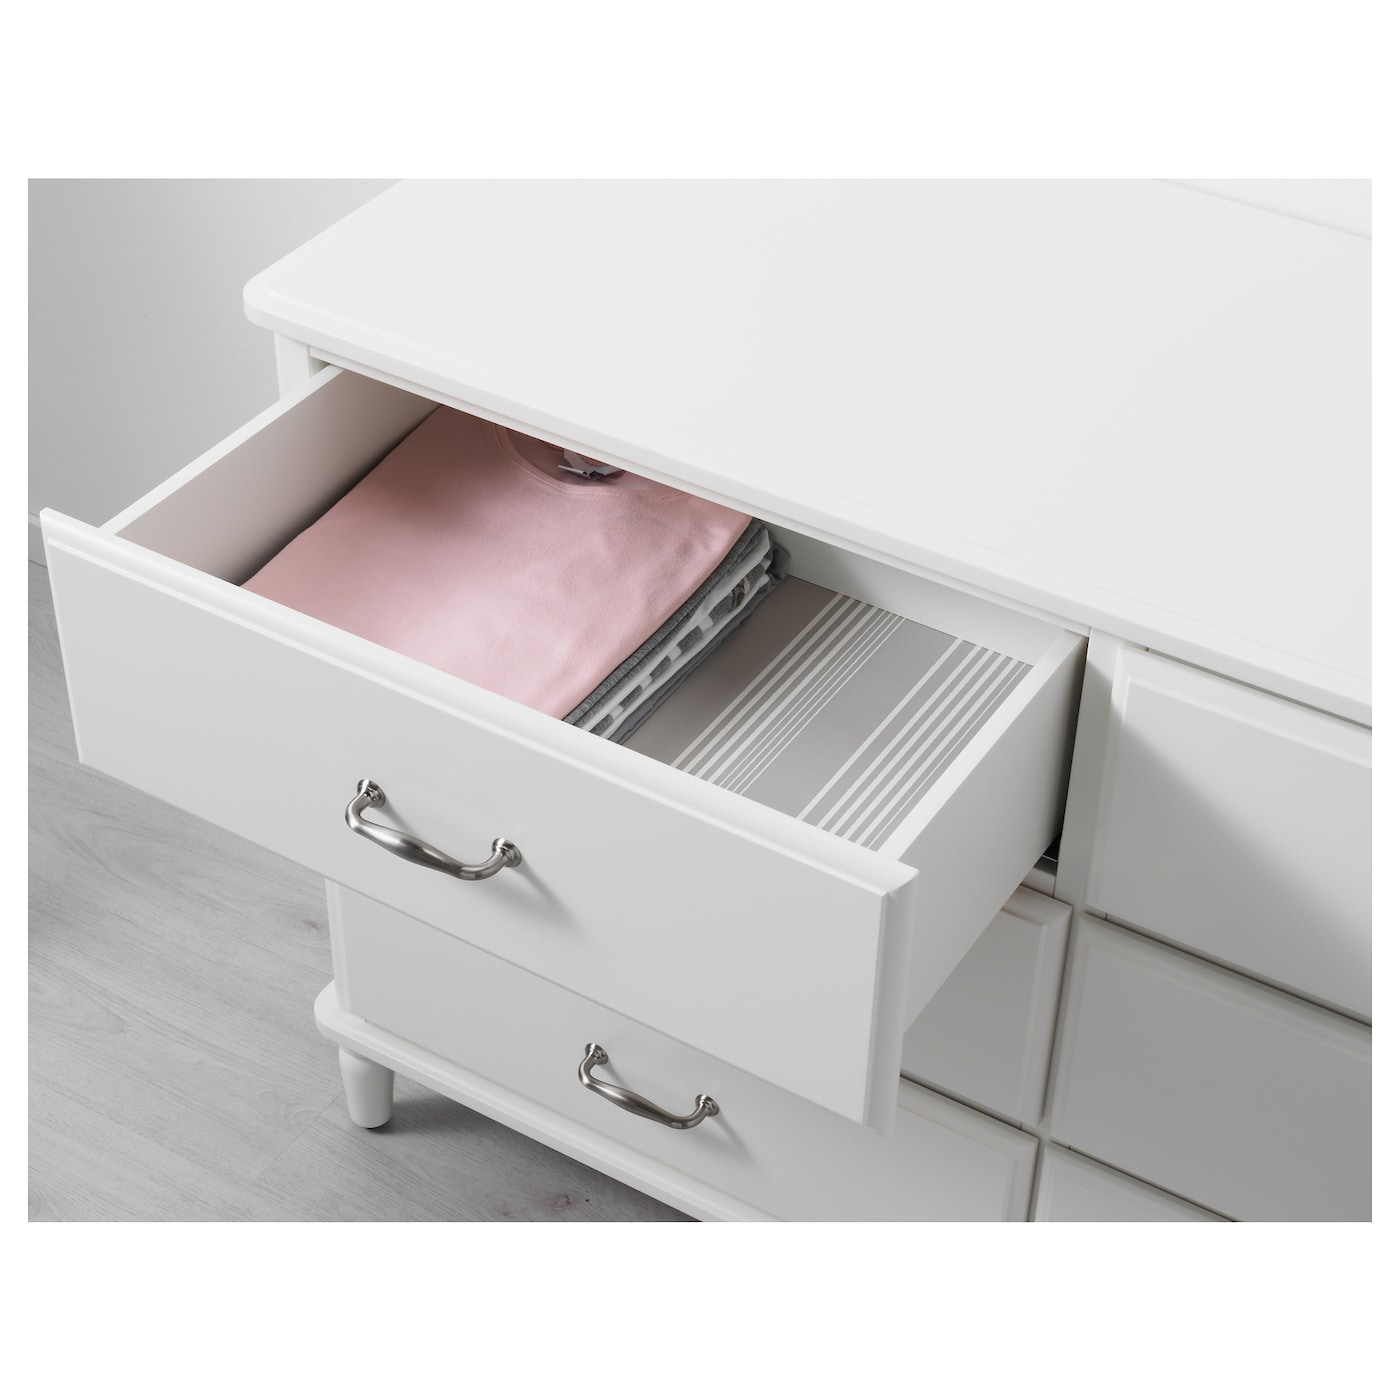 IKEA TYSSEDAL chest of 6 drawers Smooth running drawers with pull-out stop.